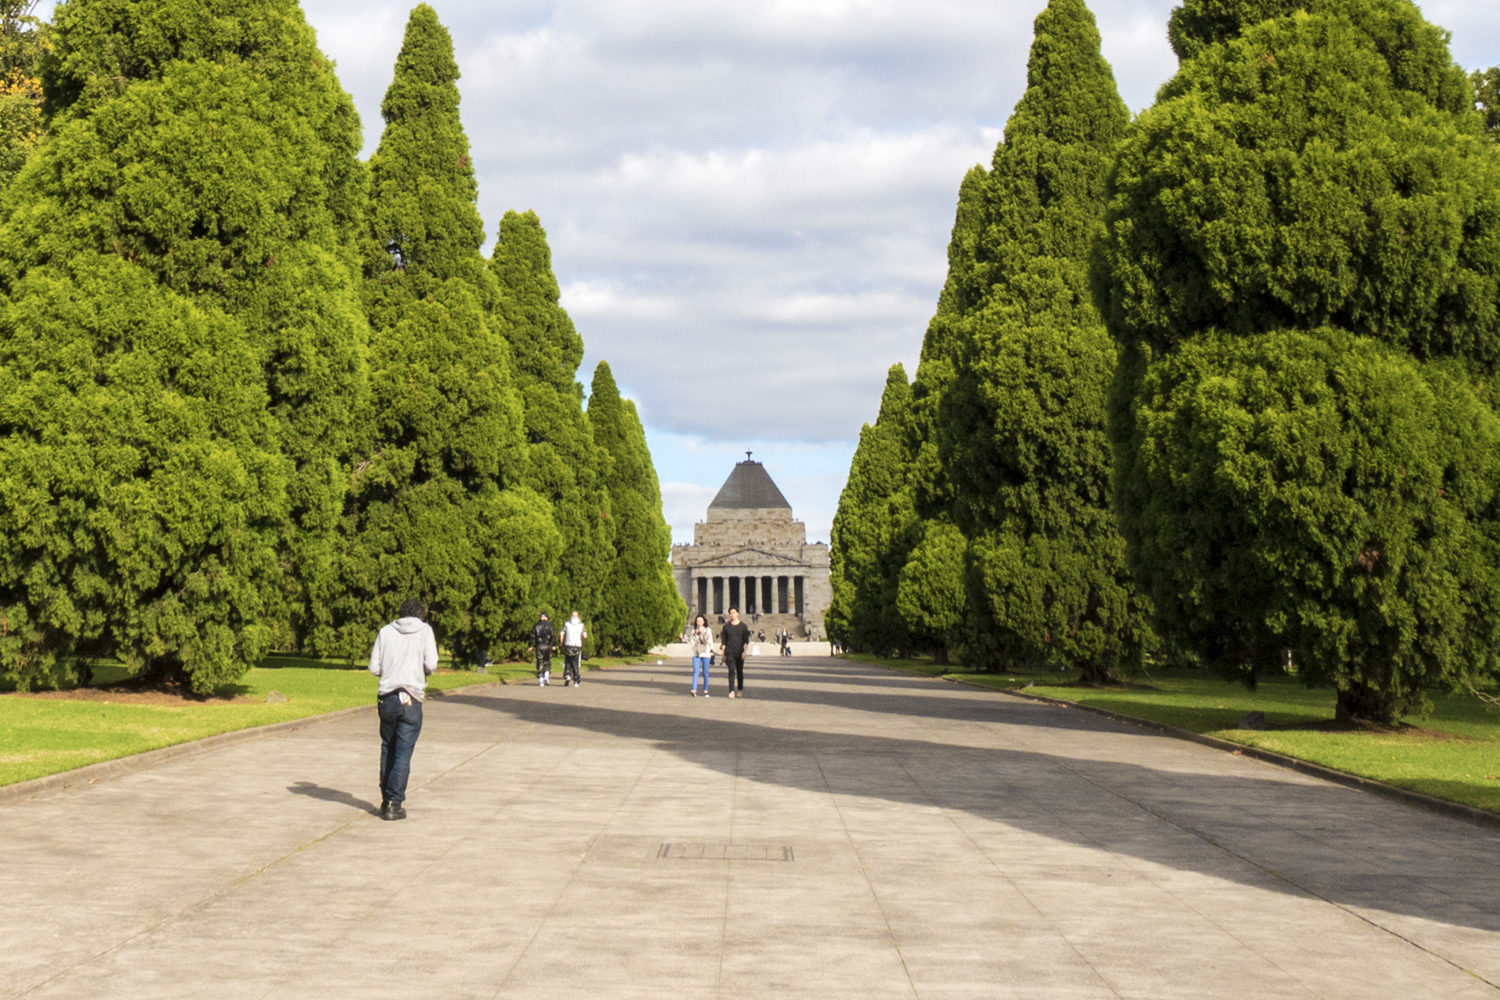 Shrine of Remembrance Melbourne